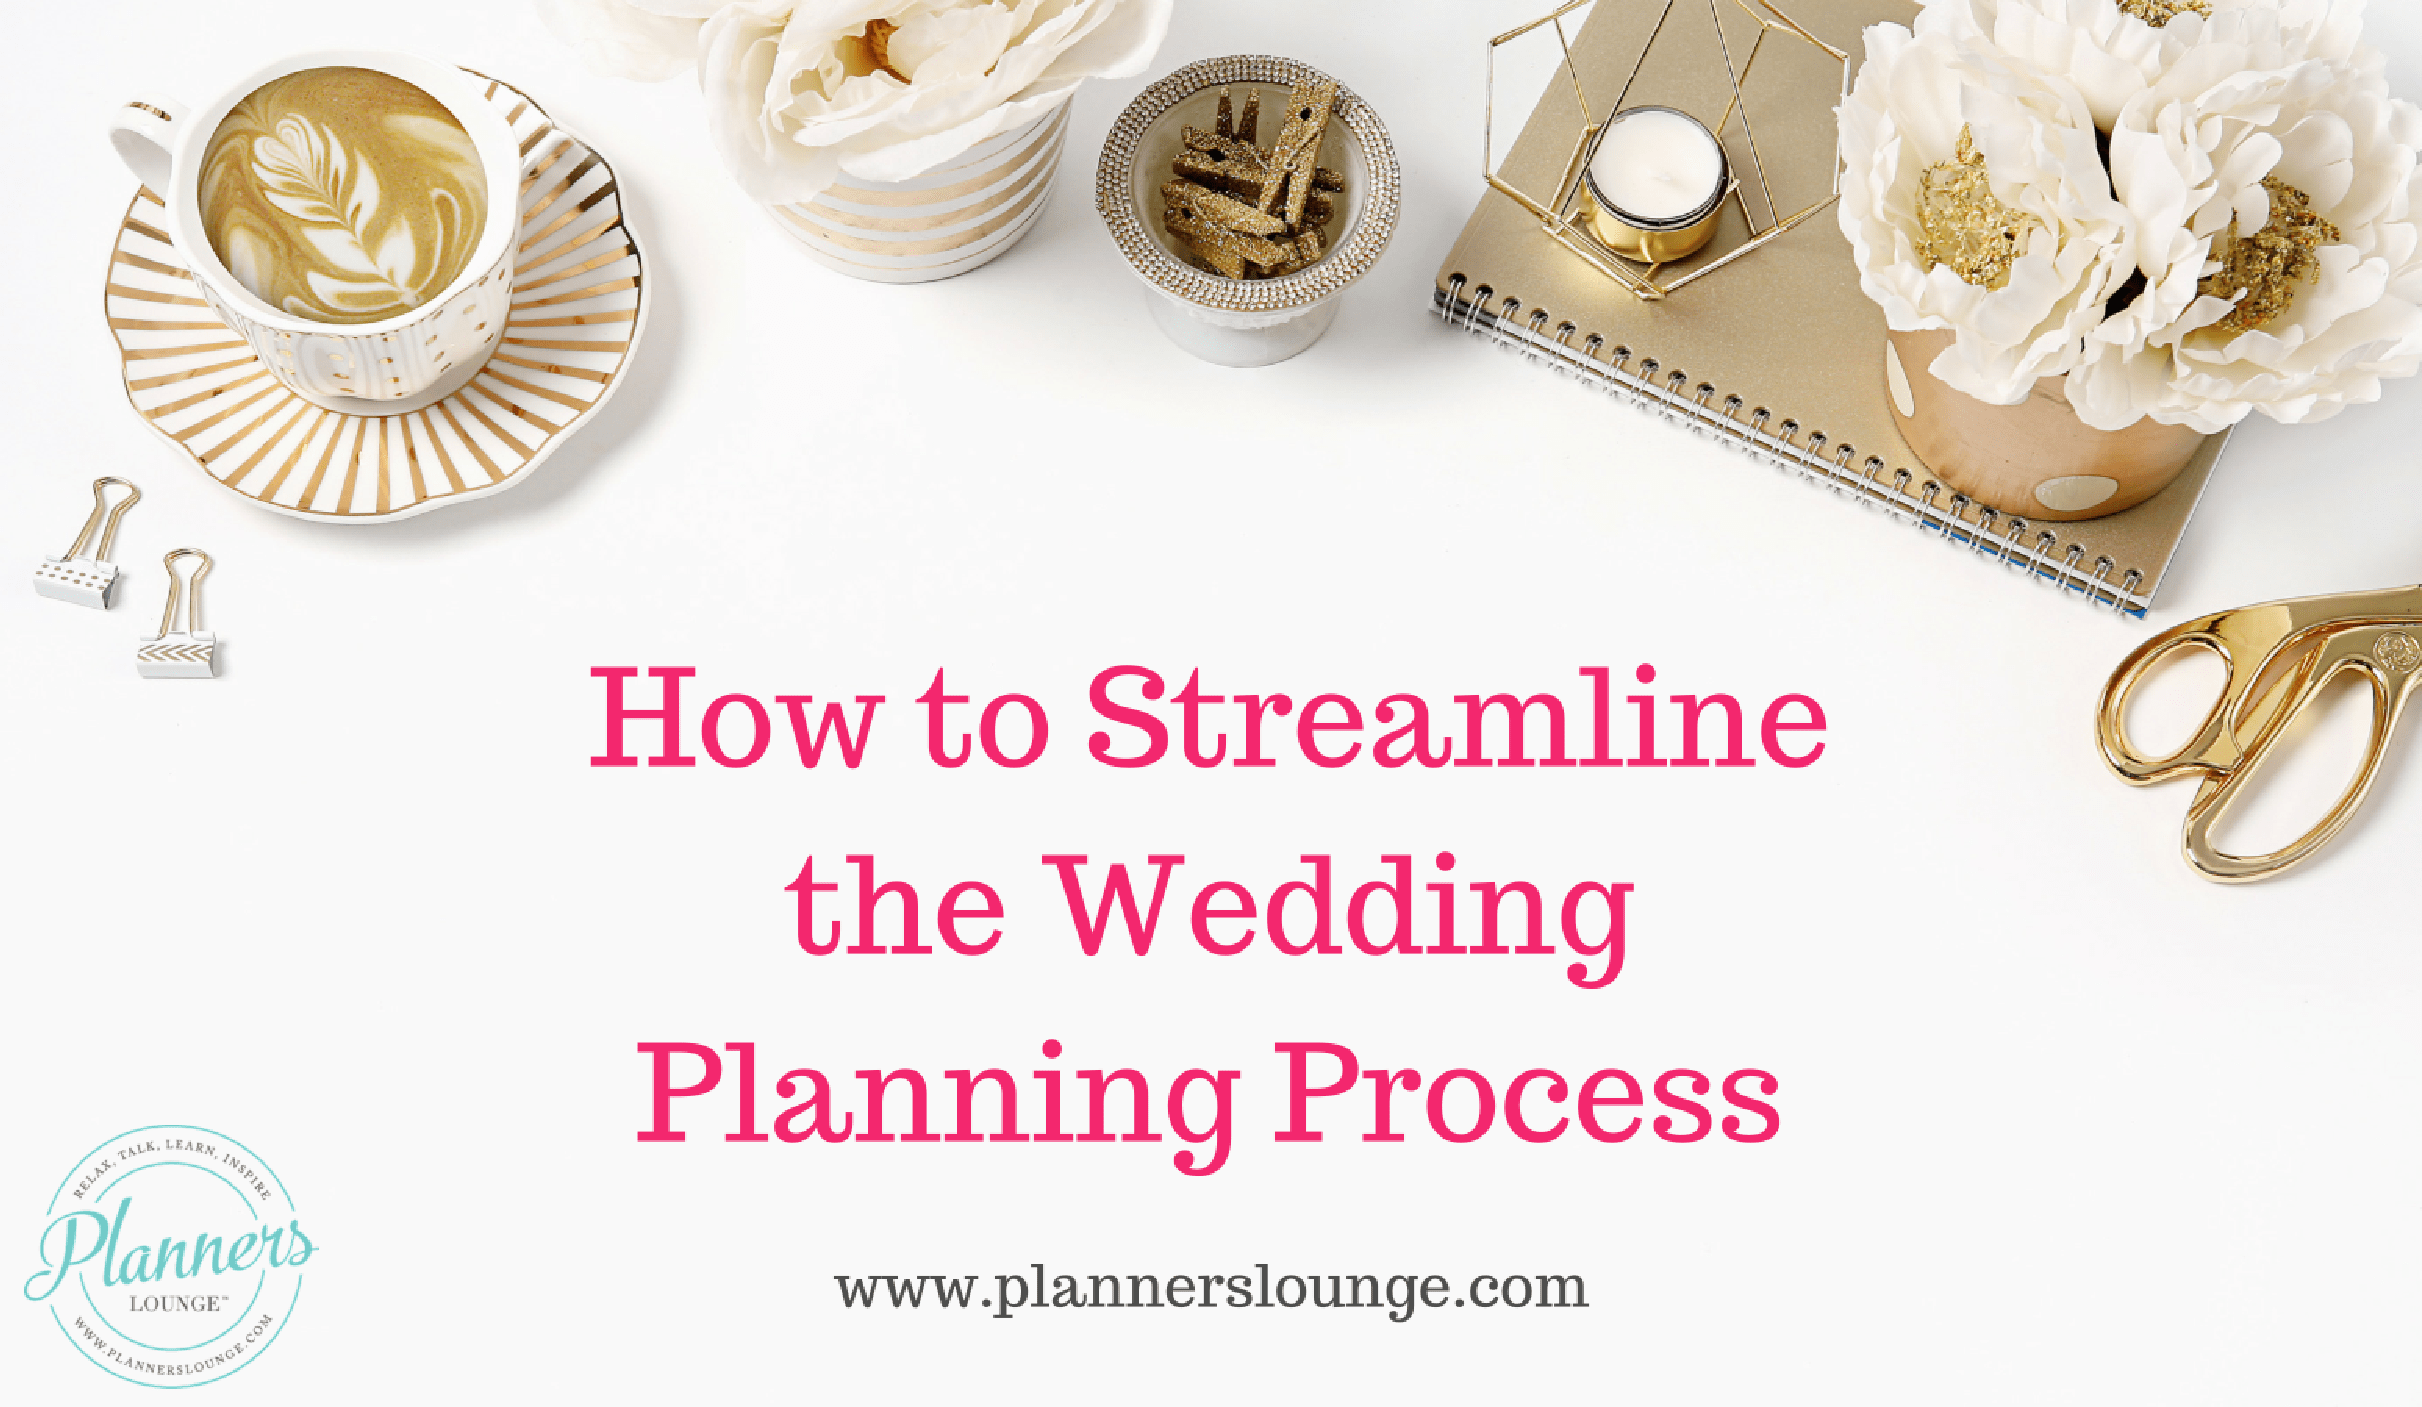 How To Streamline The Wedding Planning Process